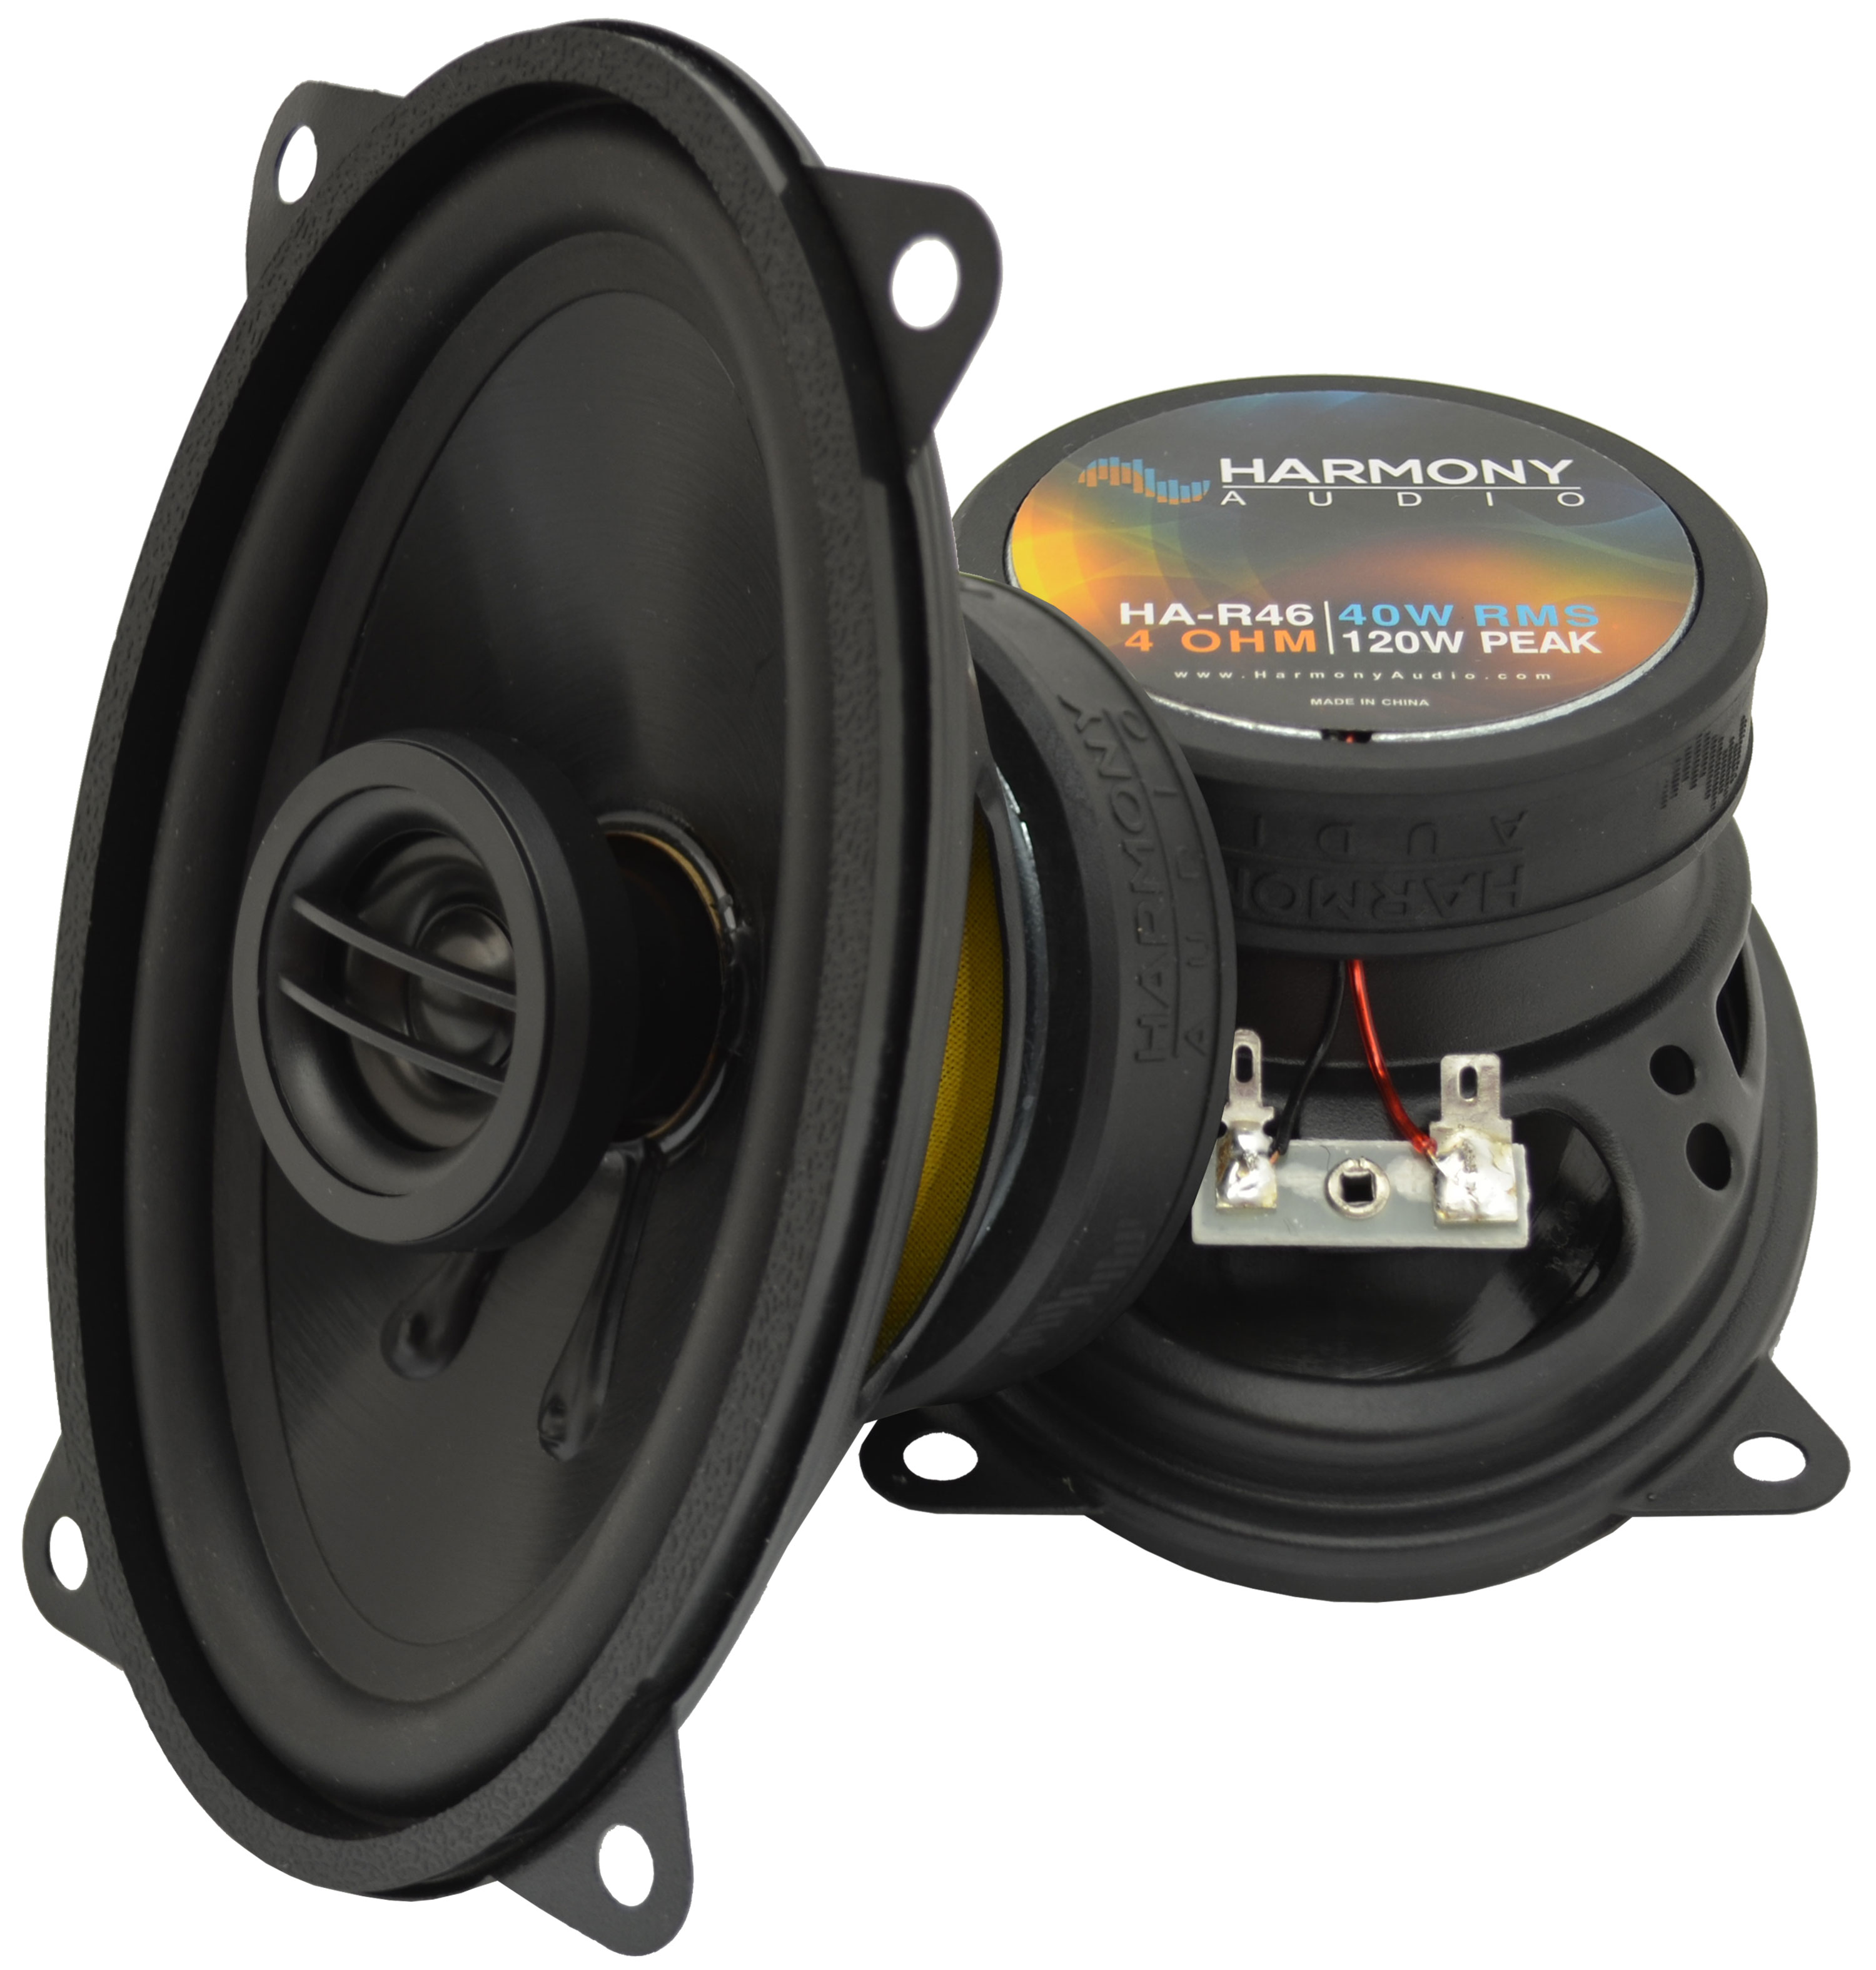 Fits Cadillac DeVille 1996-1999 Front Dash Replacement Harmony HA-R46 Speakers